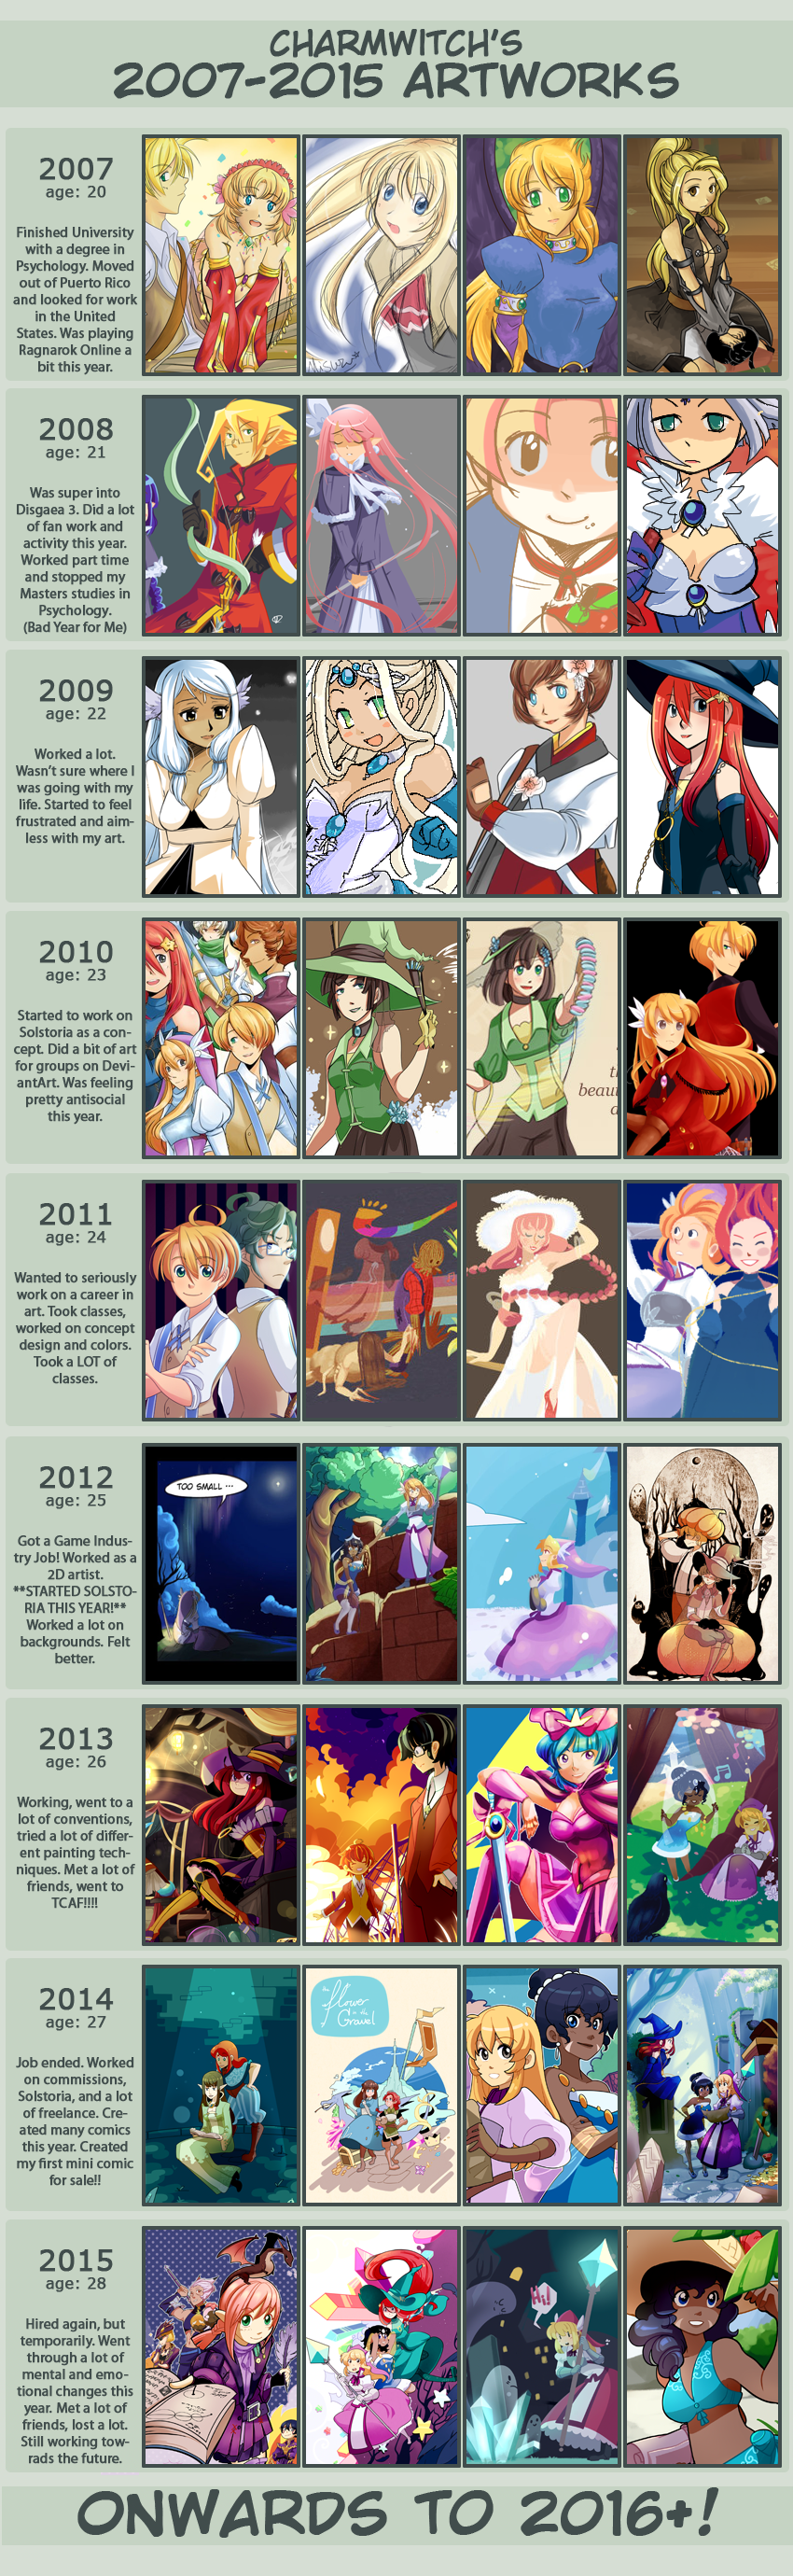 2007 - 2015 Art by charmwitch